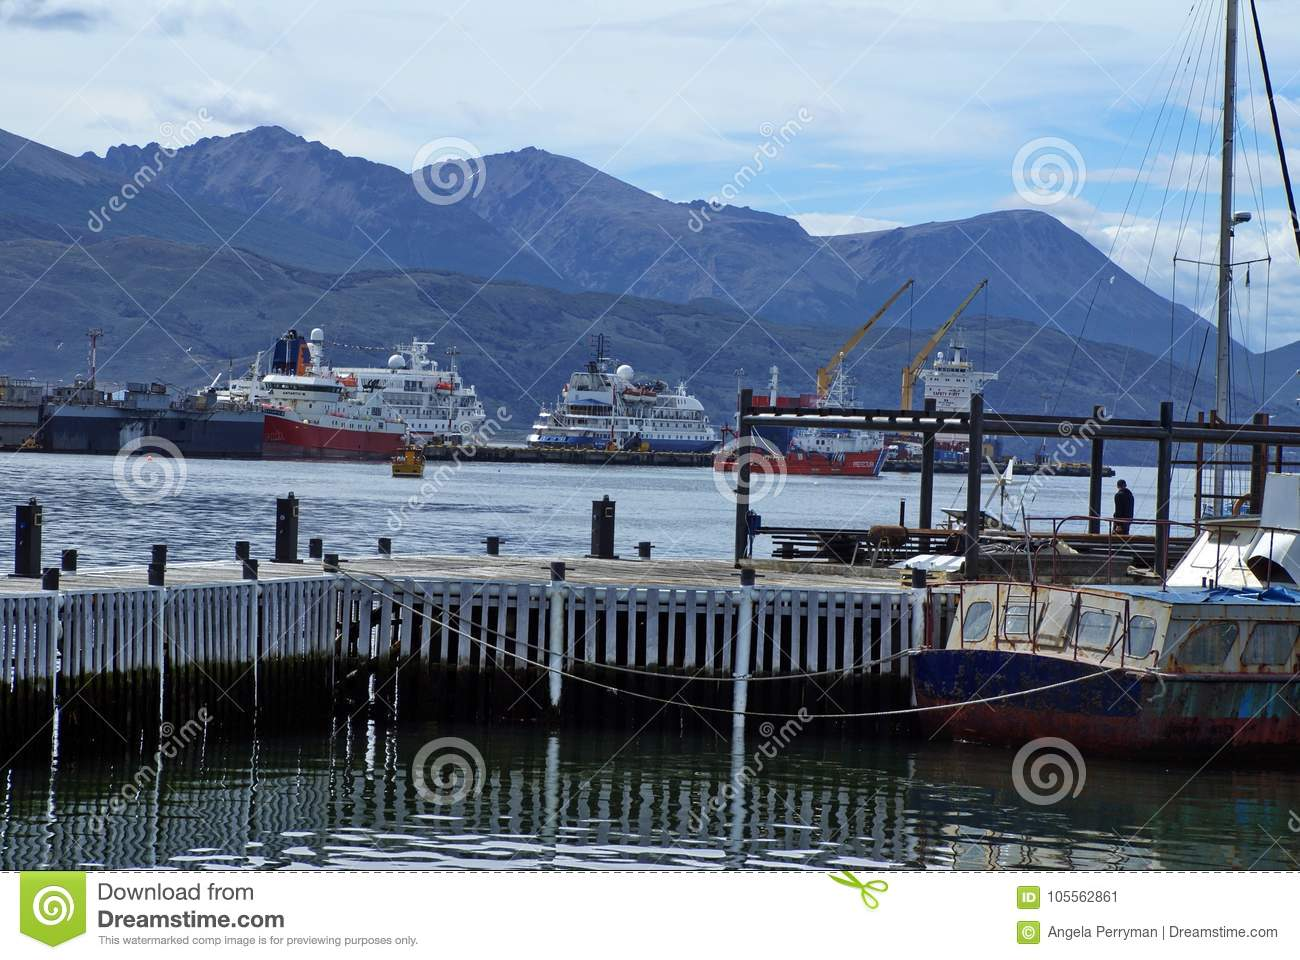 Sailboat at a wooden pier in Ushuaia Harbor with the commercial pier in the background